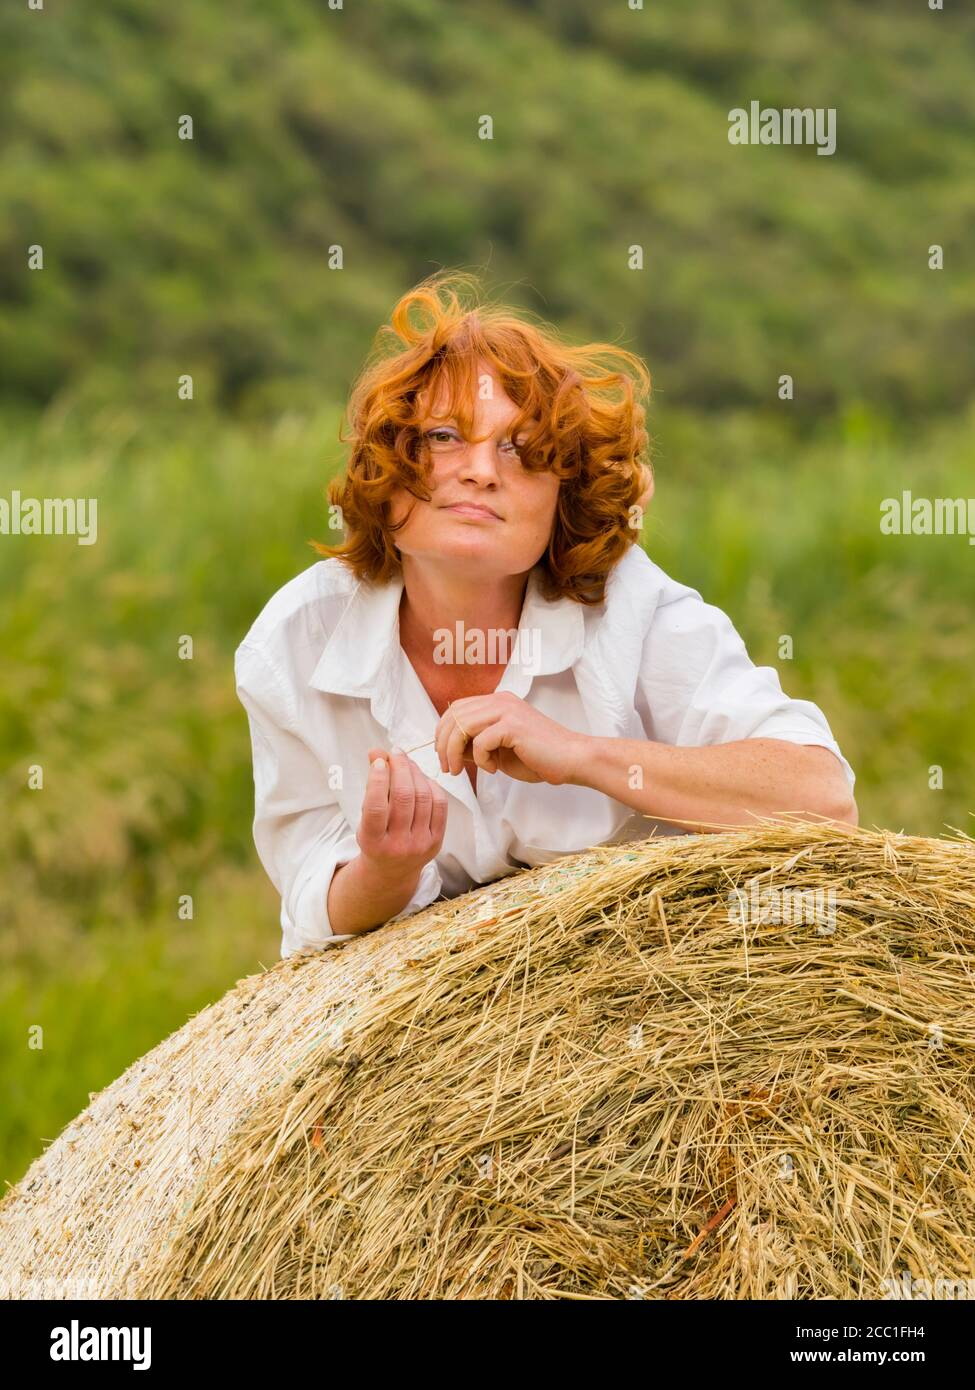 Redhaired woman on hay haystack portrait view Stock Photo